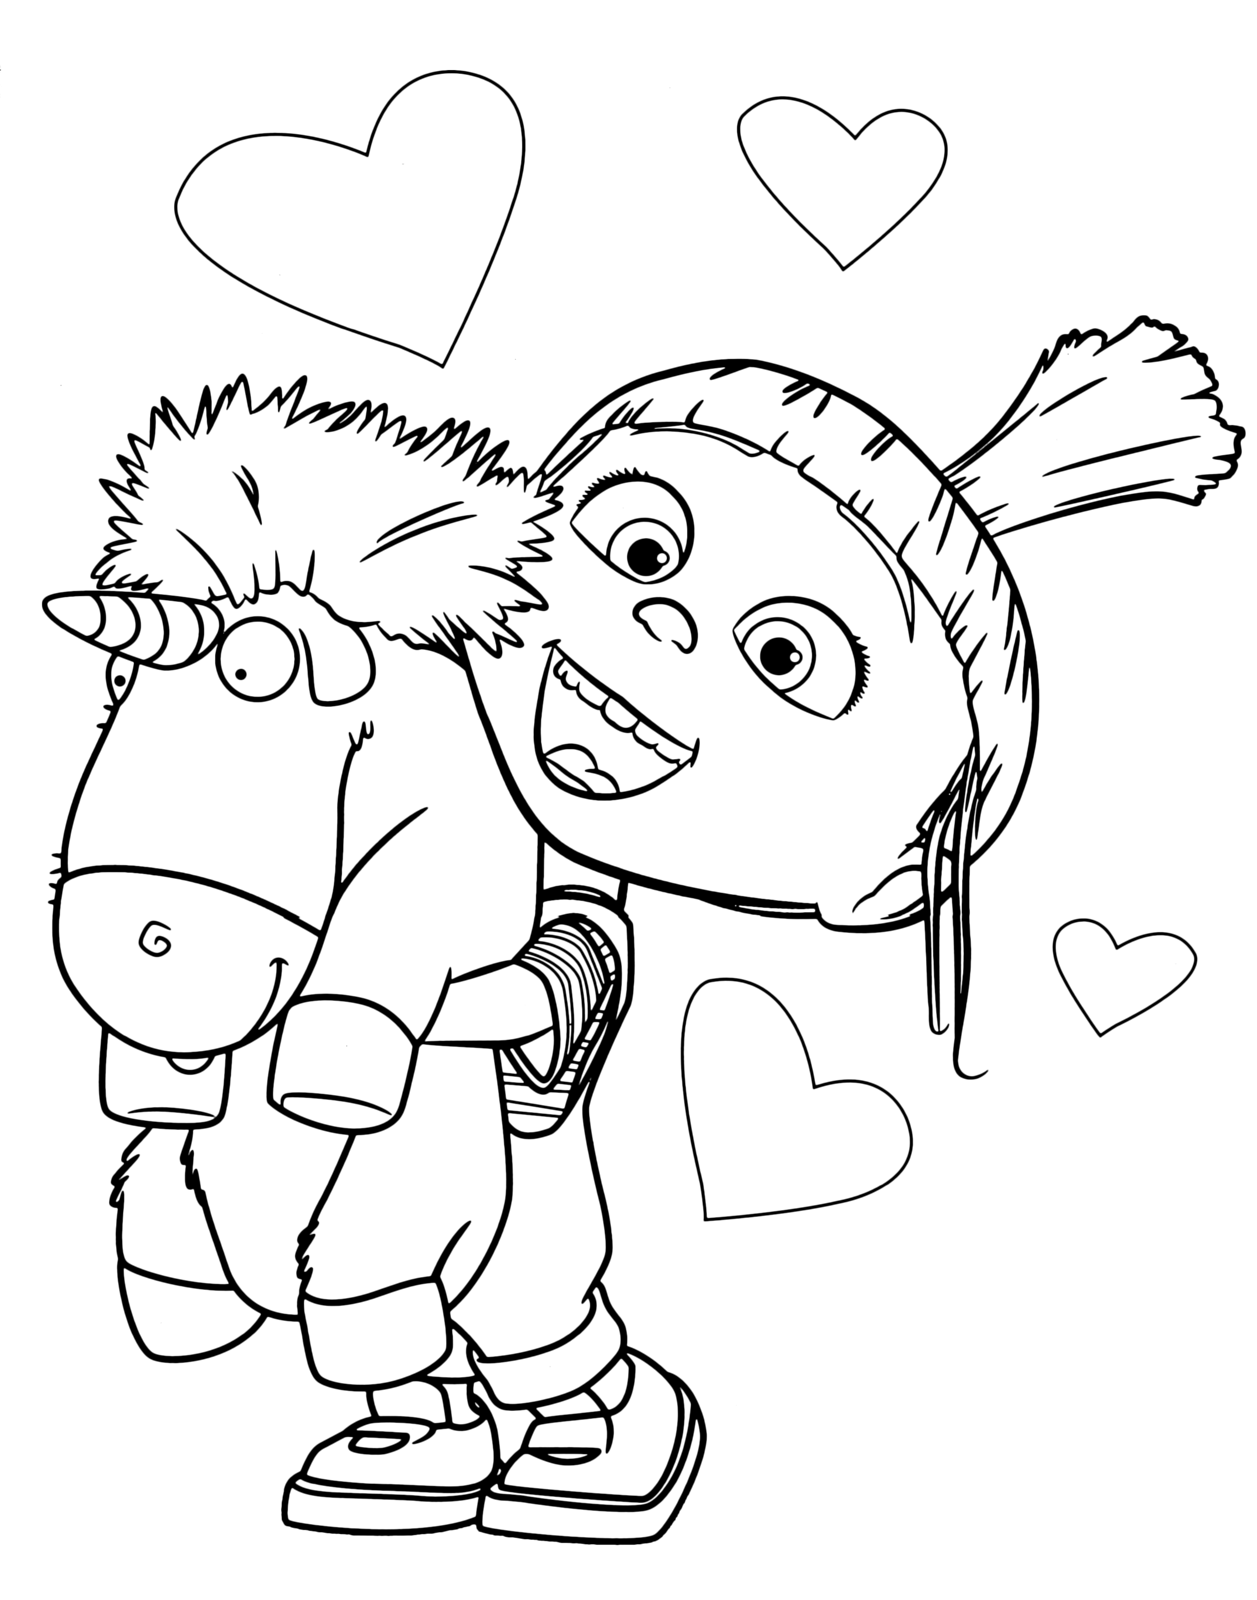 Agnes With Fluffy Unicorn Despicable Me Coloring Pages Unicorn Coloring Pages Minion Coloring Pages Stitch Coloring Pages